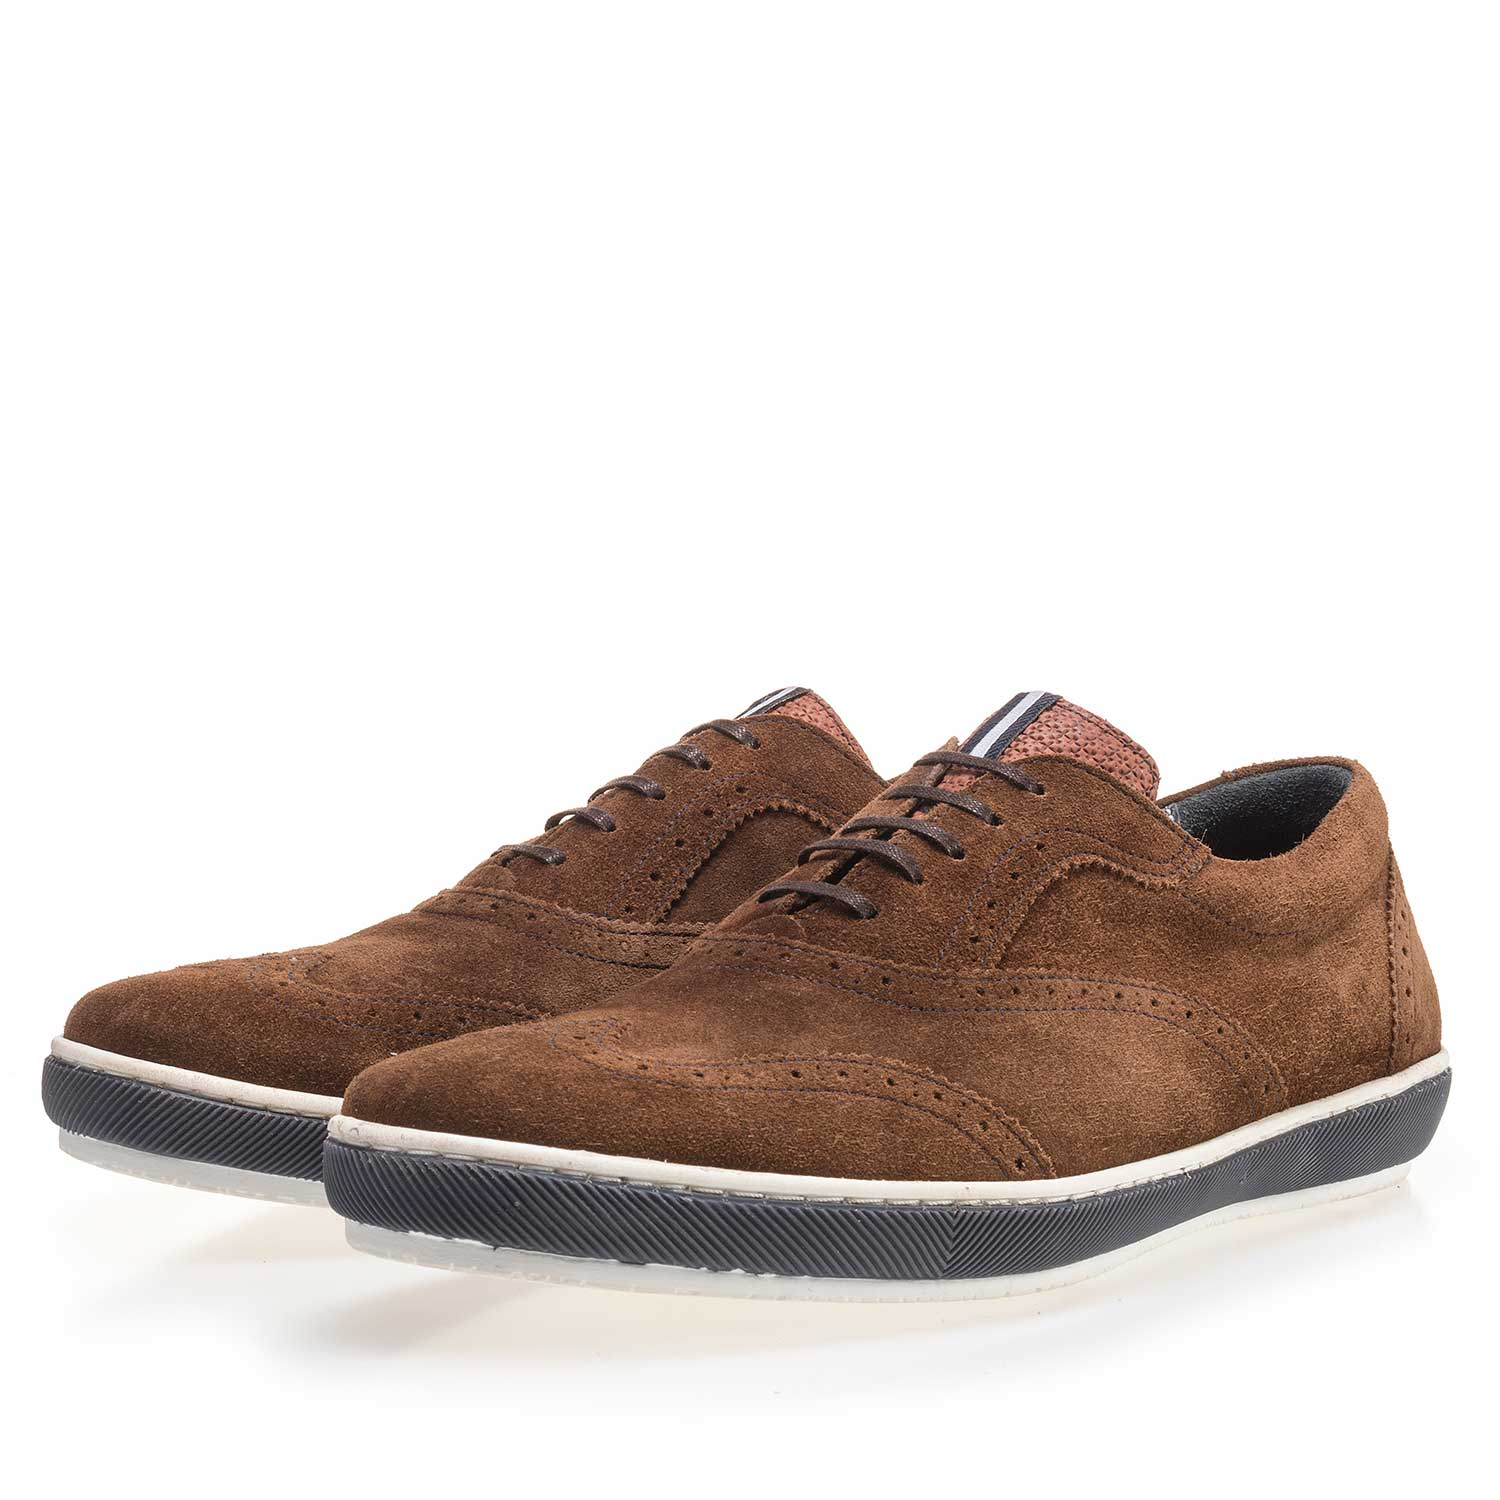 19036/40 - Brown brogue suede leather sneaker